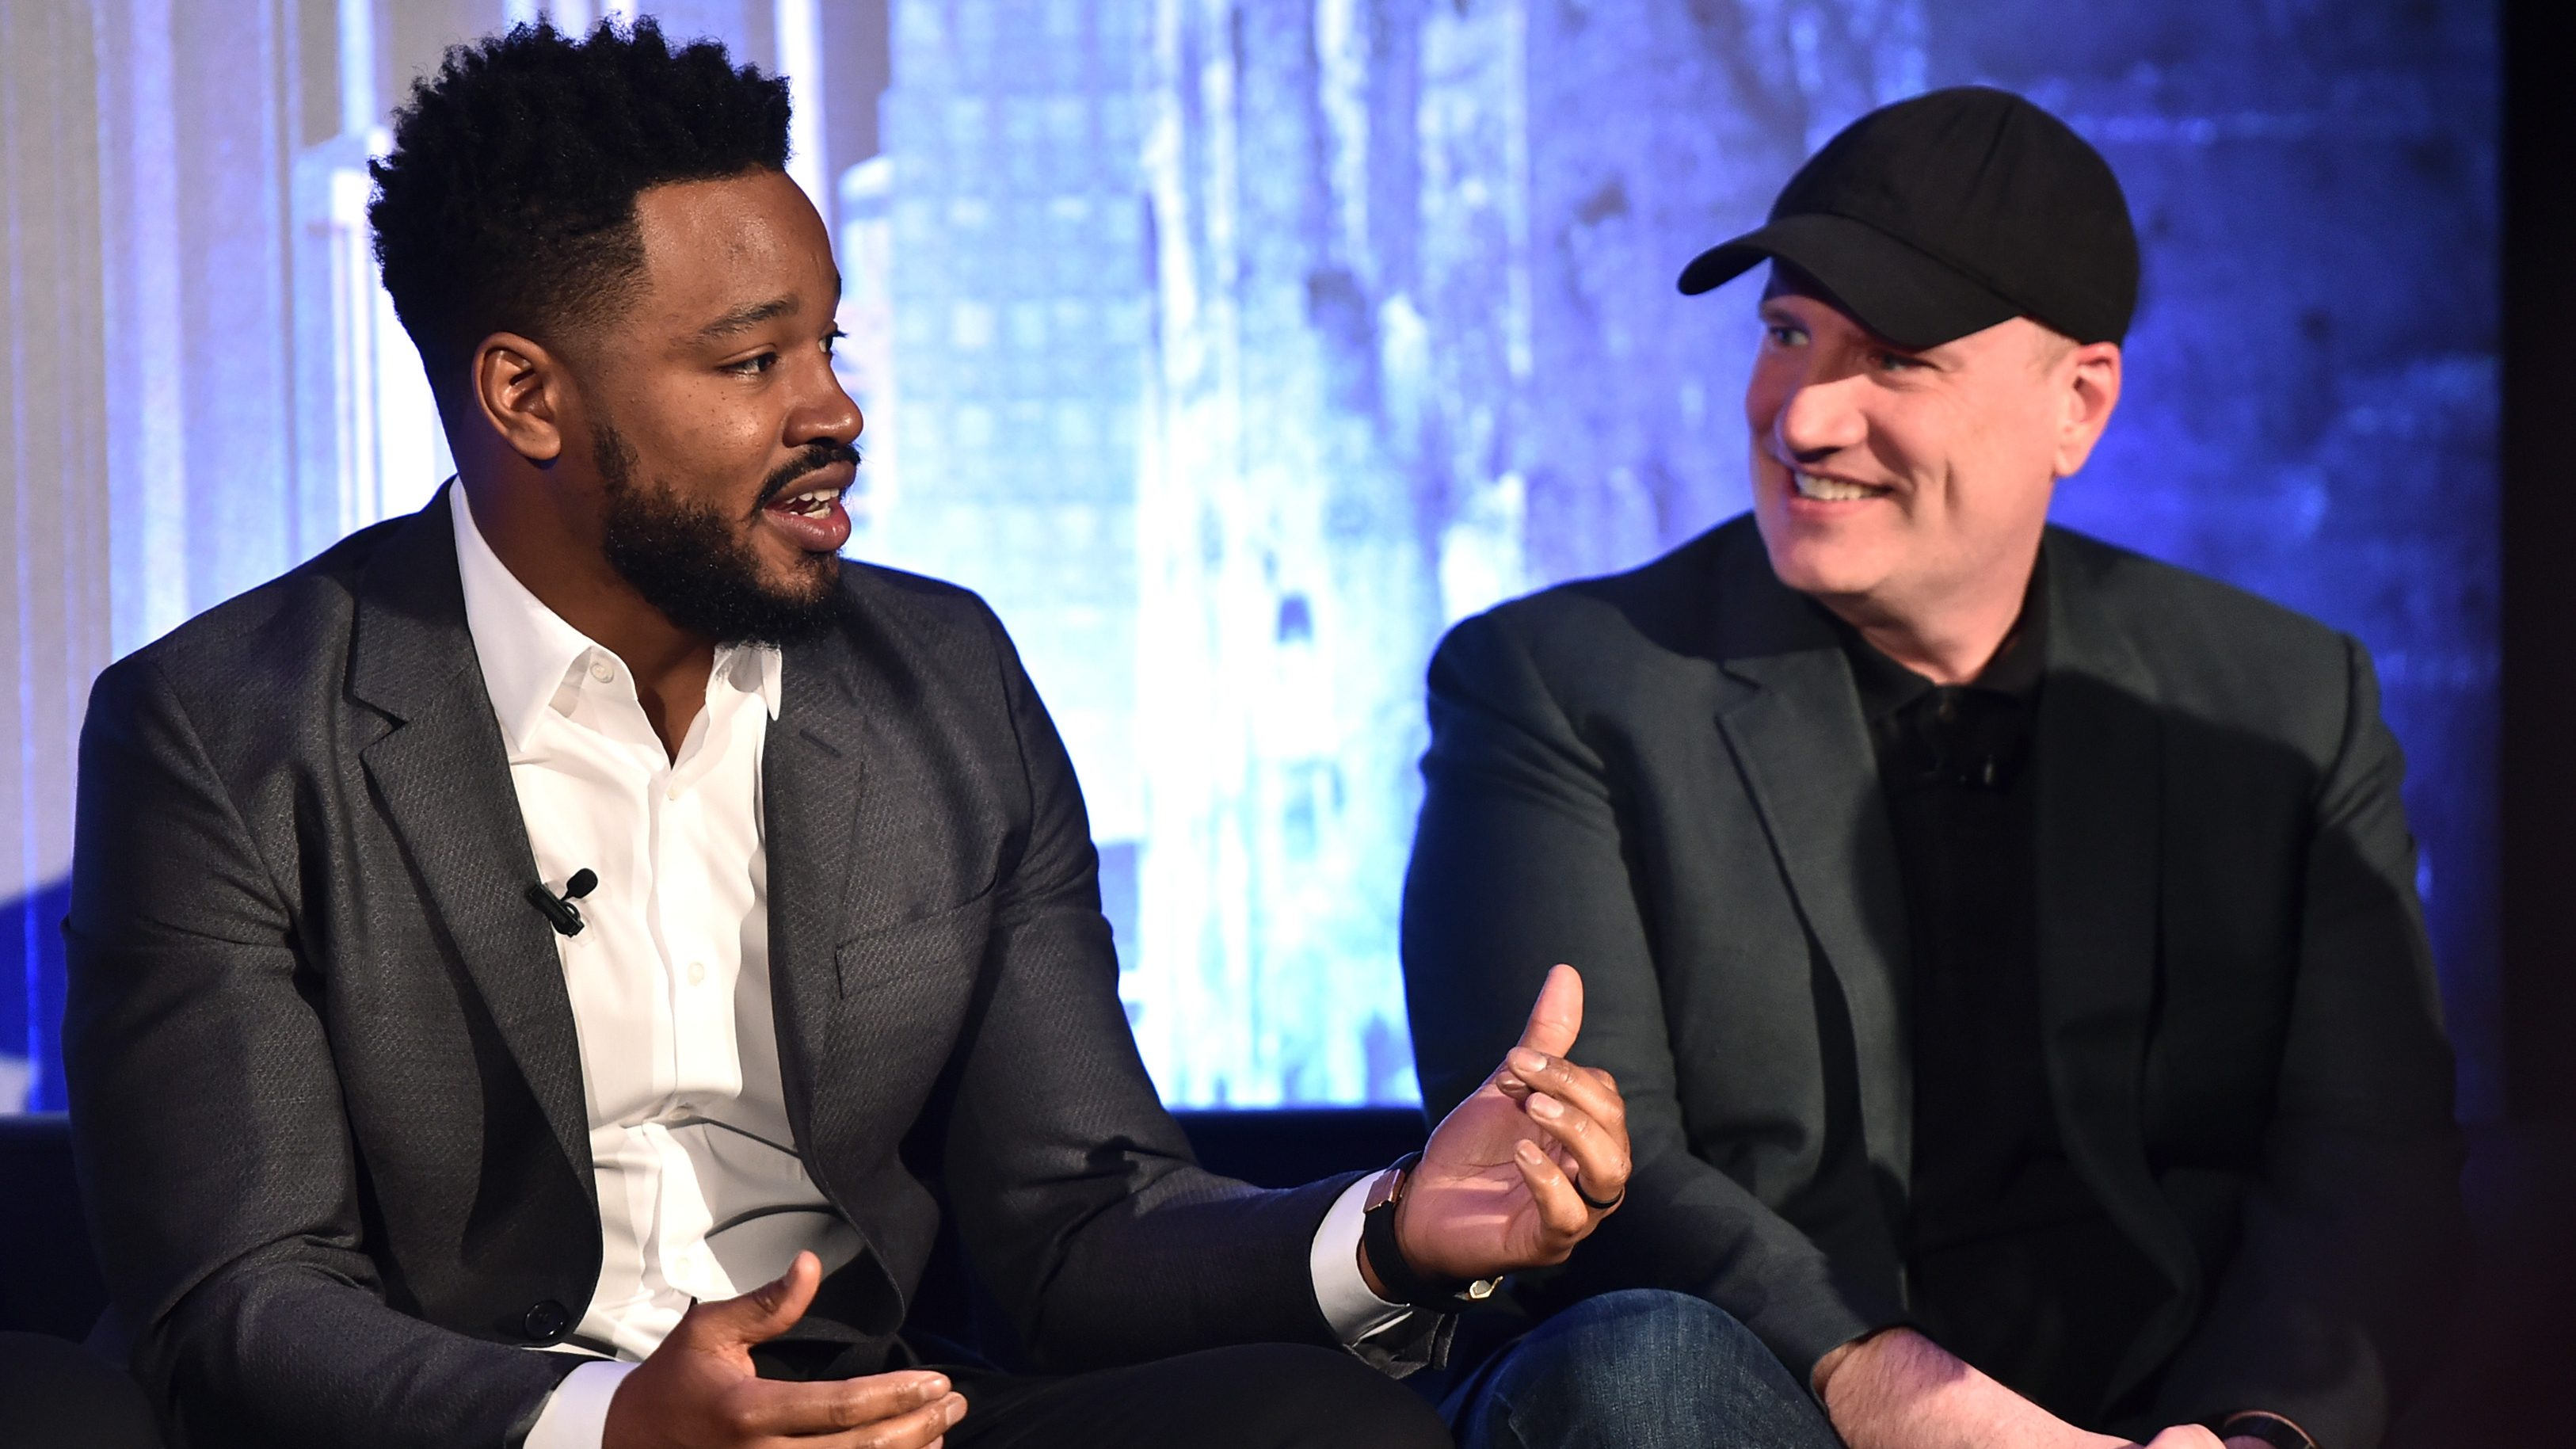 BEVERLY HILLS, CA - JANUARY 30: Director Ryan Coogler (L) and President of Marvel Studios Kevin Feige attend the Marvel Studios' BLACK PANTHER Global Junket Press Conference on January 30, 2018 at Montage Beverly Hills in Beverly Hills, California.  (Photo by Alberto E. Rodriguez/Getty Images for Disney) *** Local Caption *** Ryan Coogler; Kevin Feige